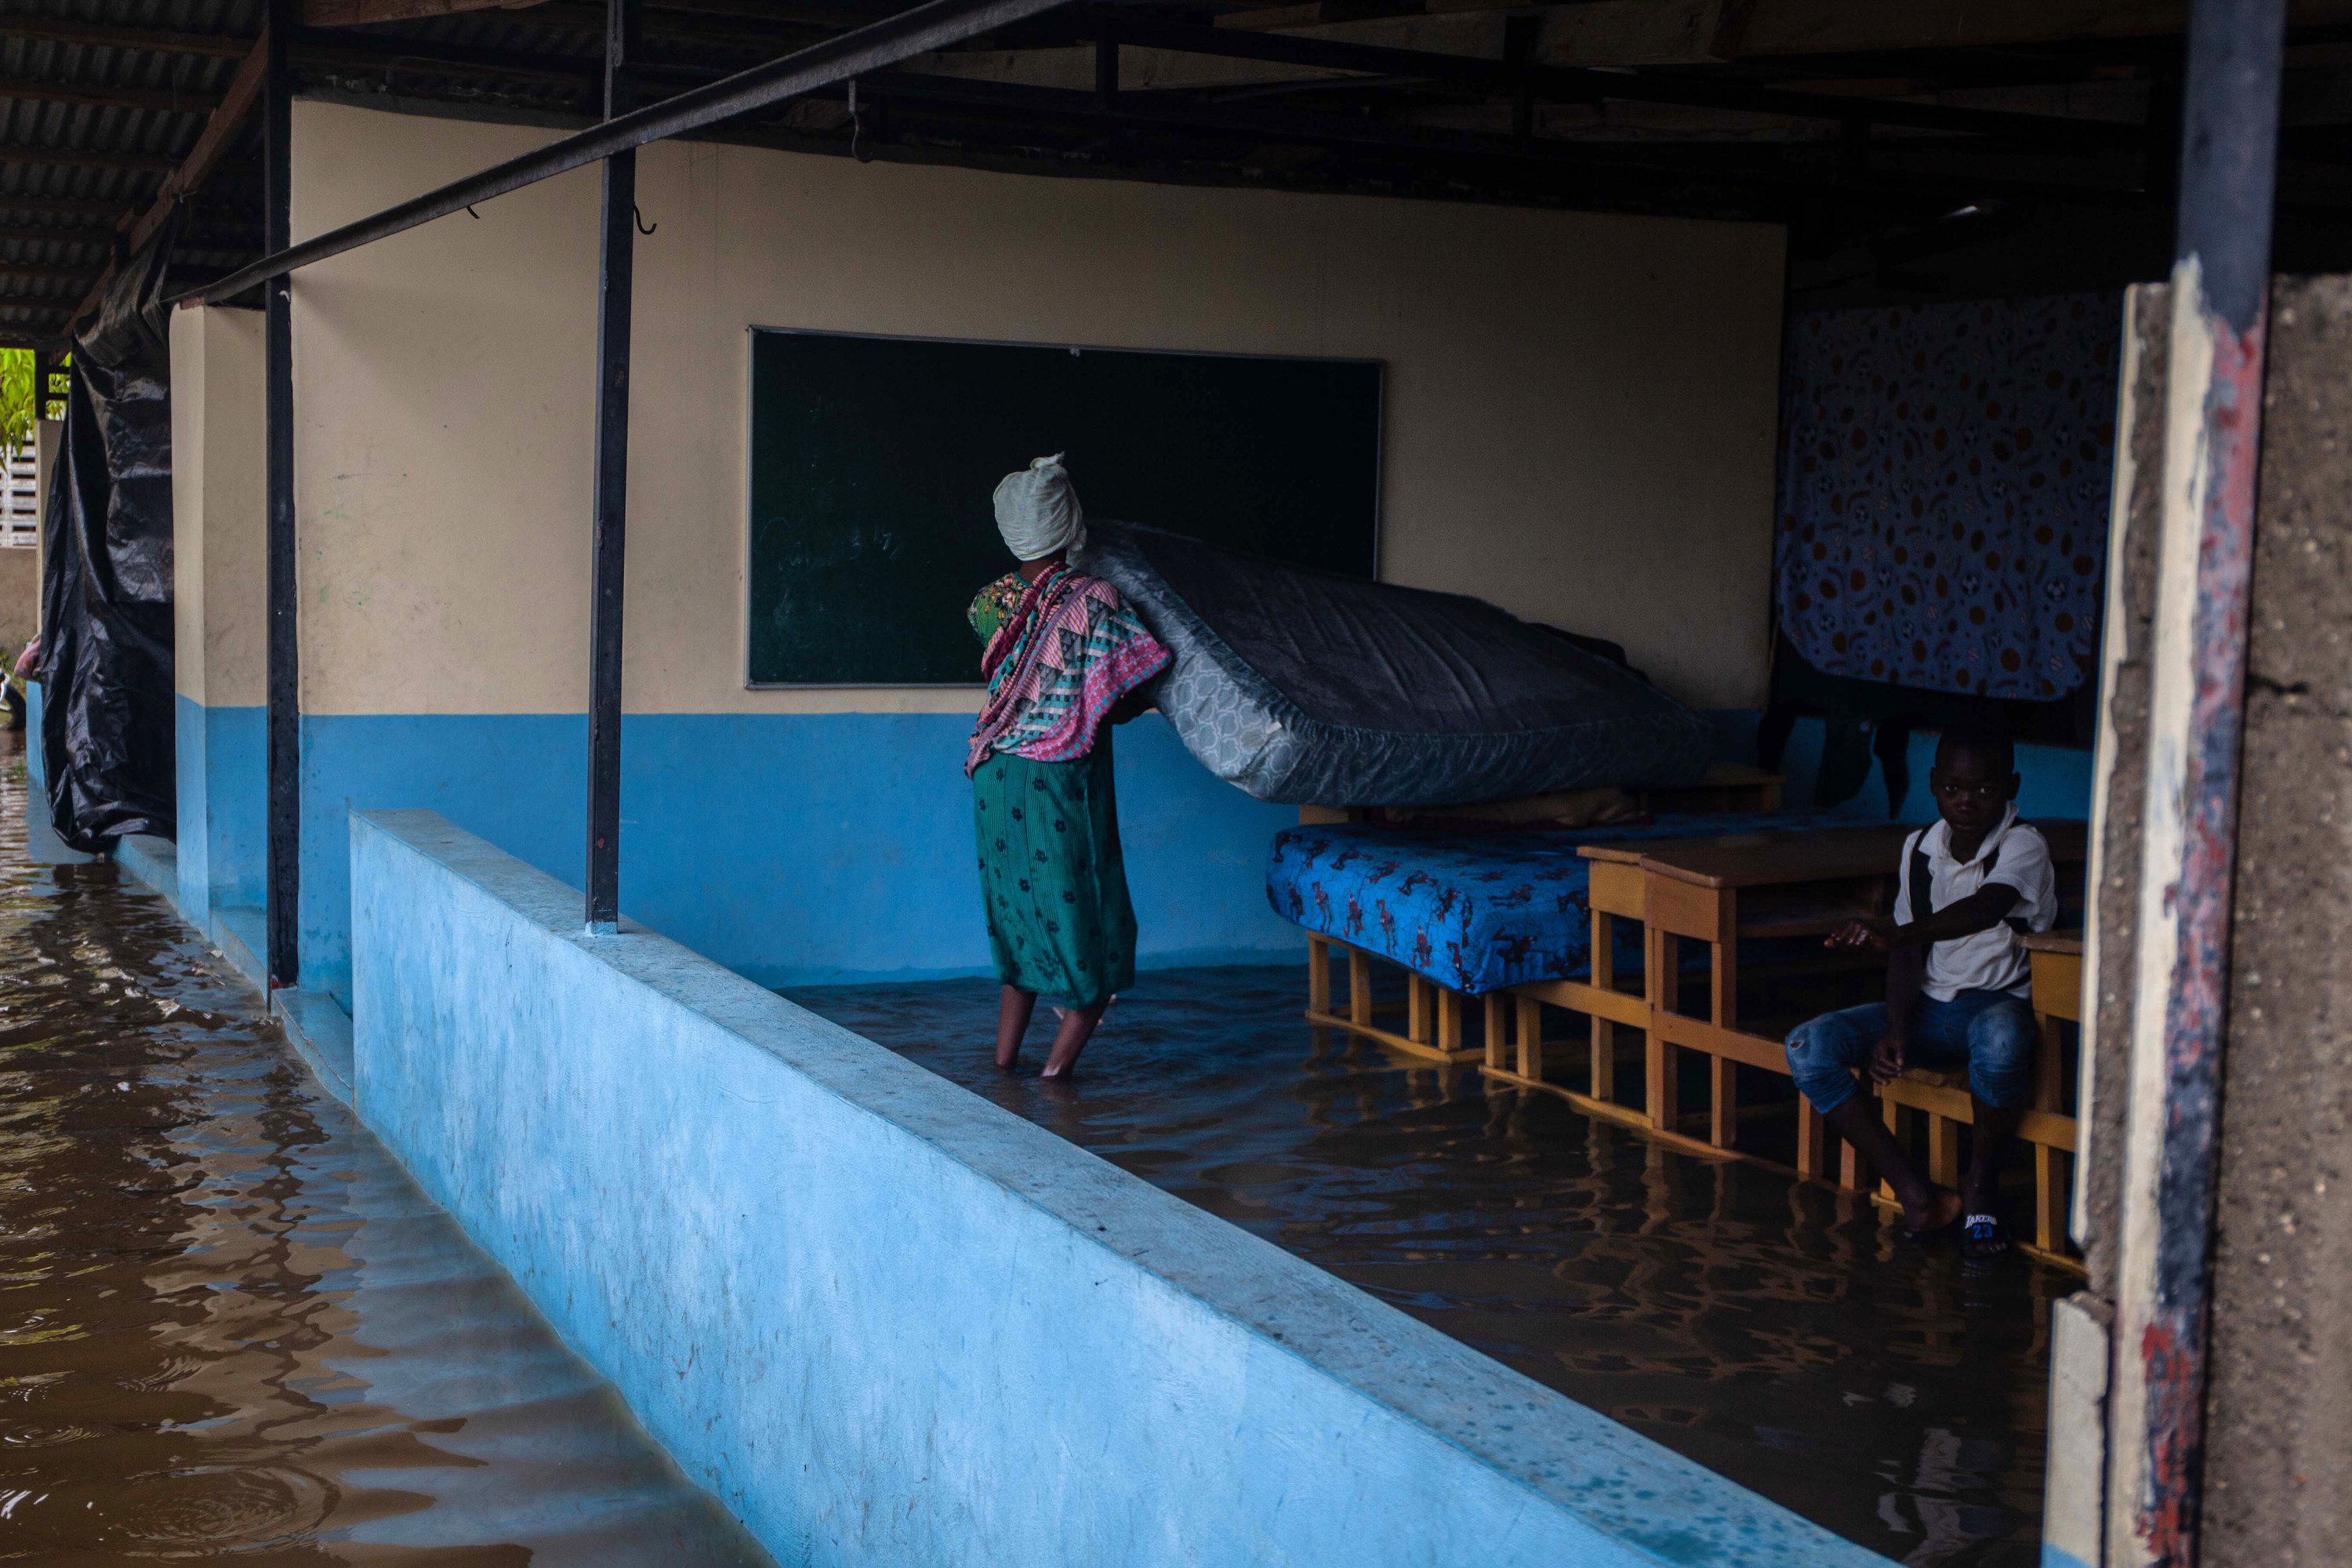 A woman is seen placing a mattress on a tabletop as she walks in ankle-high water